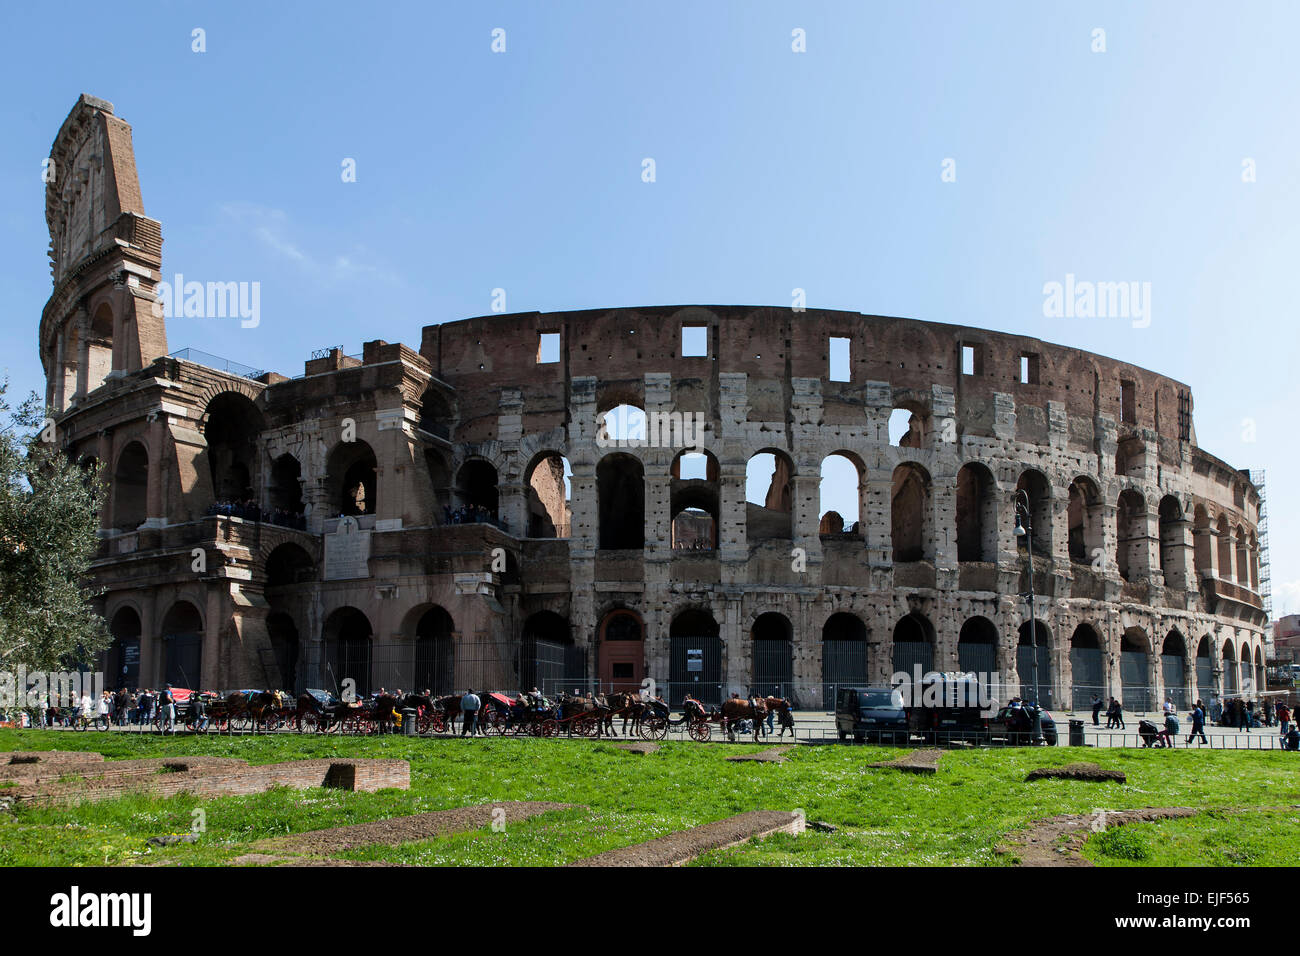 Colosseum in Rom, Italy Stock Photo